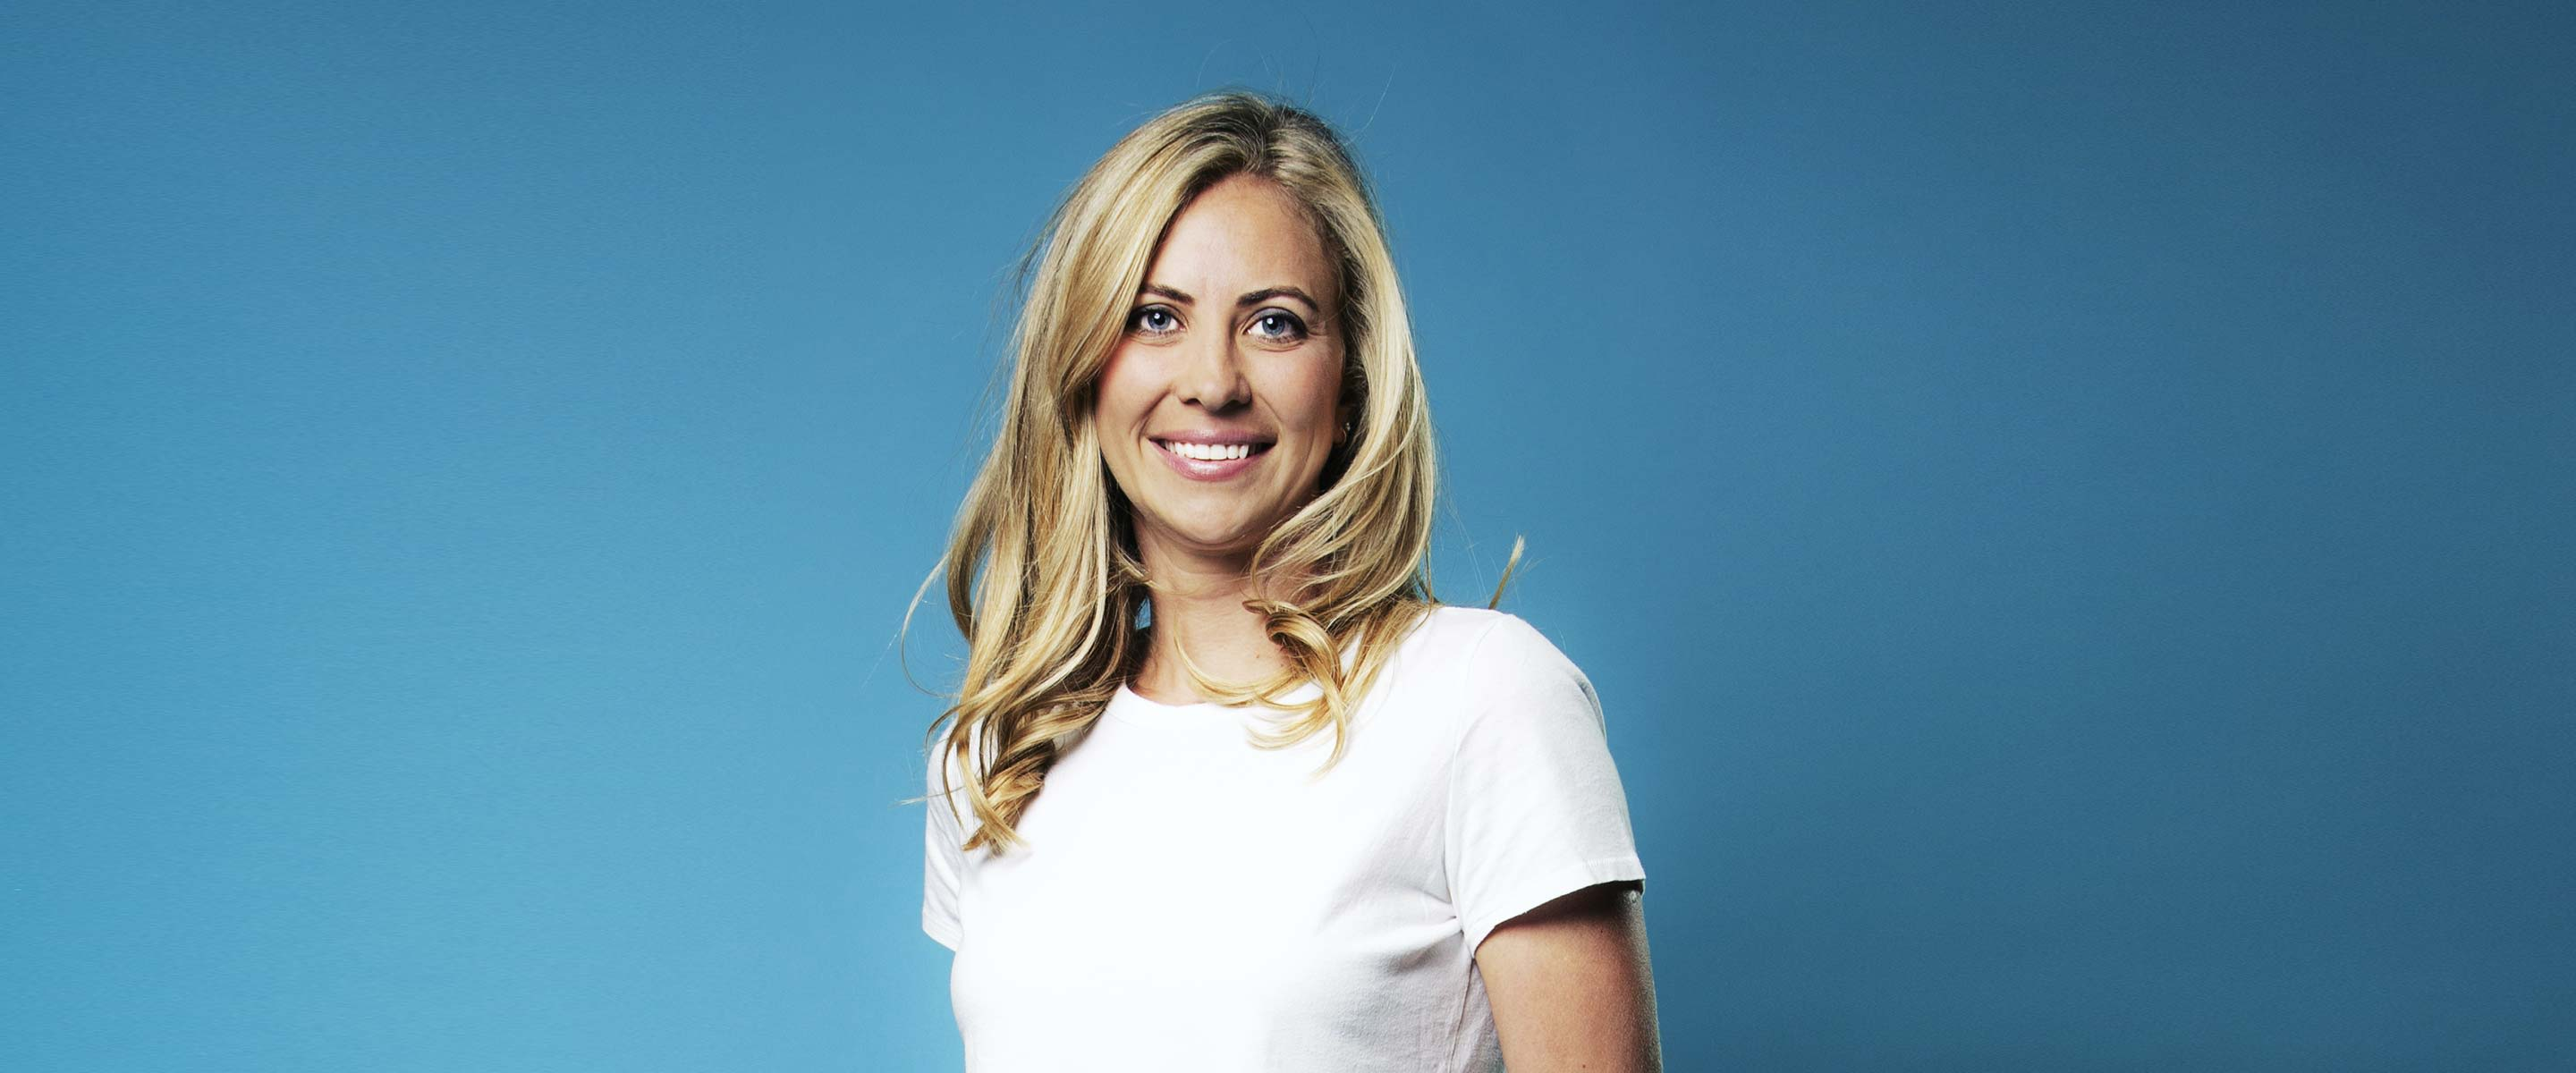 Holly Branson in a white t-shirt standing against a blue background and smiling into the camera